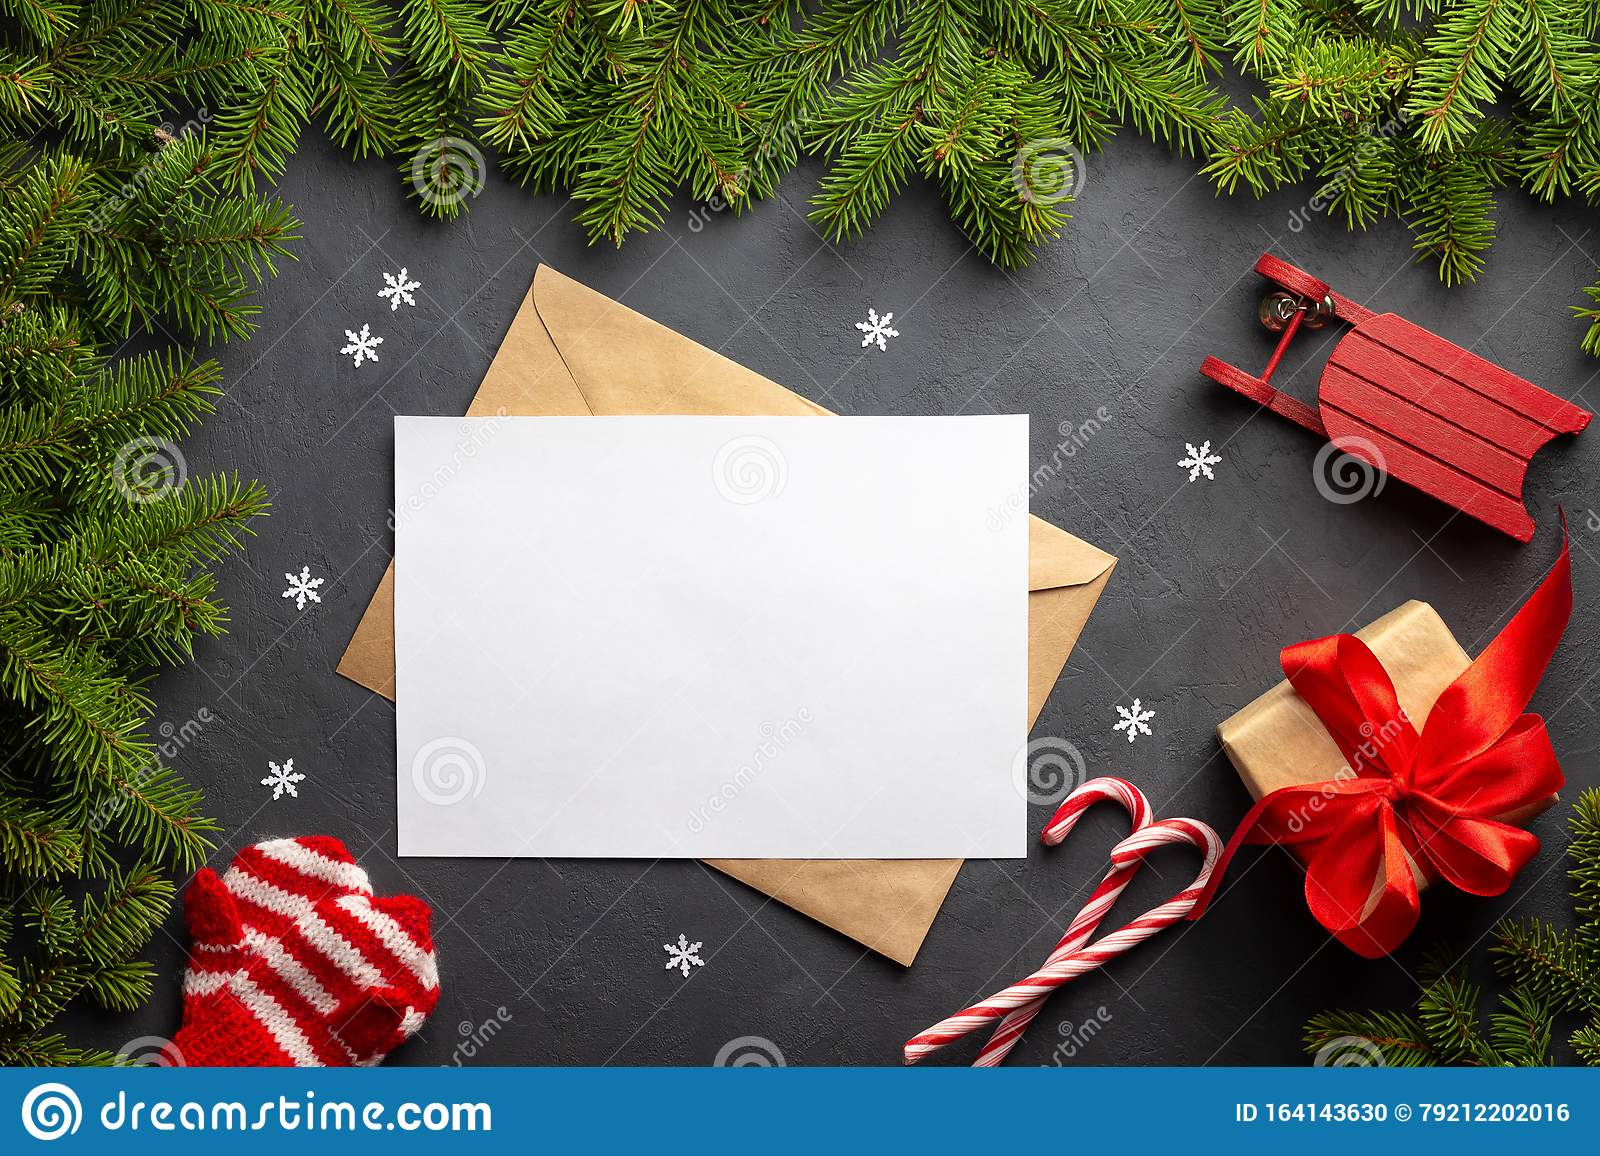 Envelope, paper card for letter and xmas decoration. Mockup for Merry Christmas or Happy New Year.